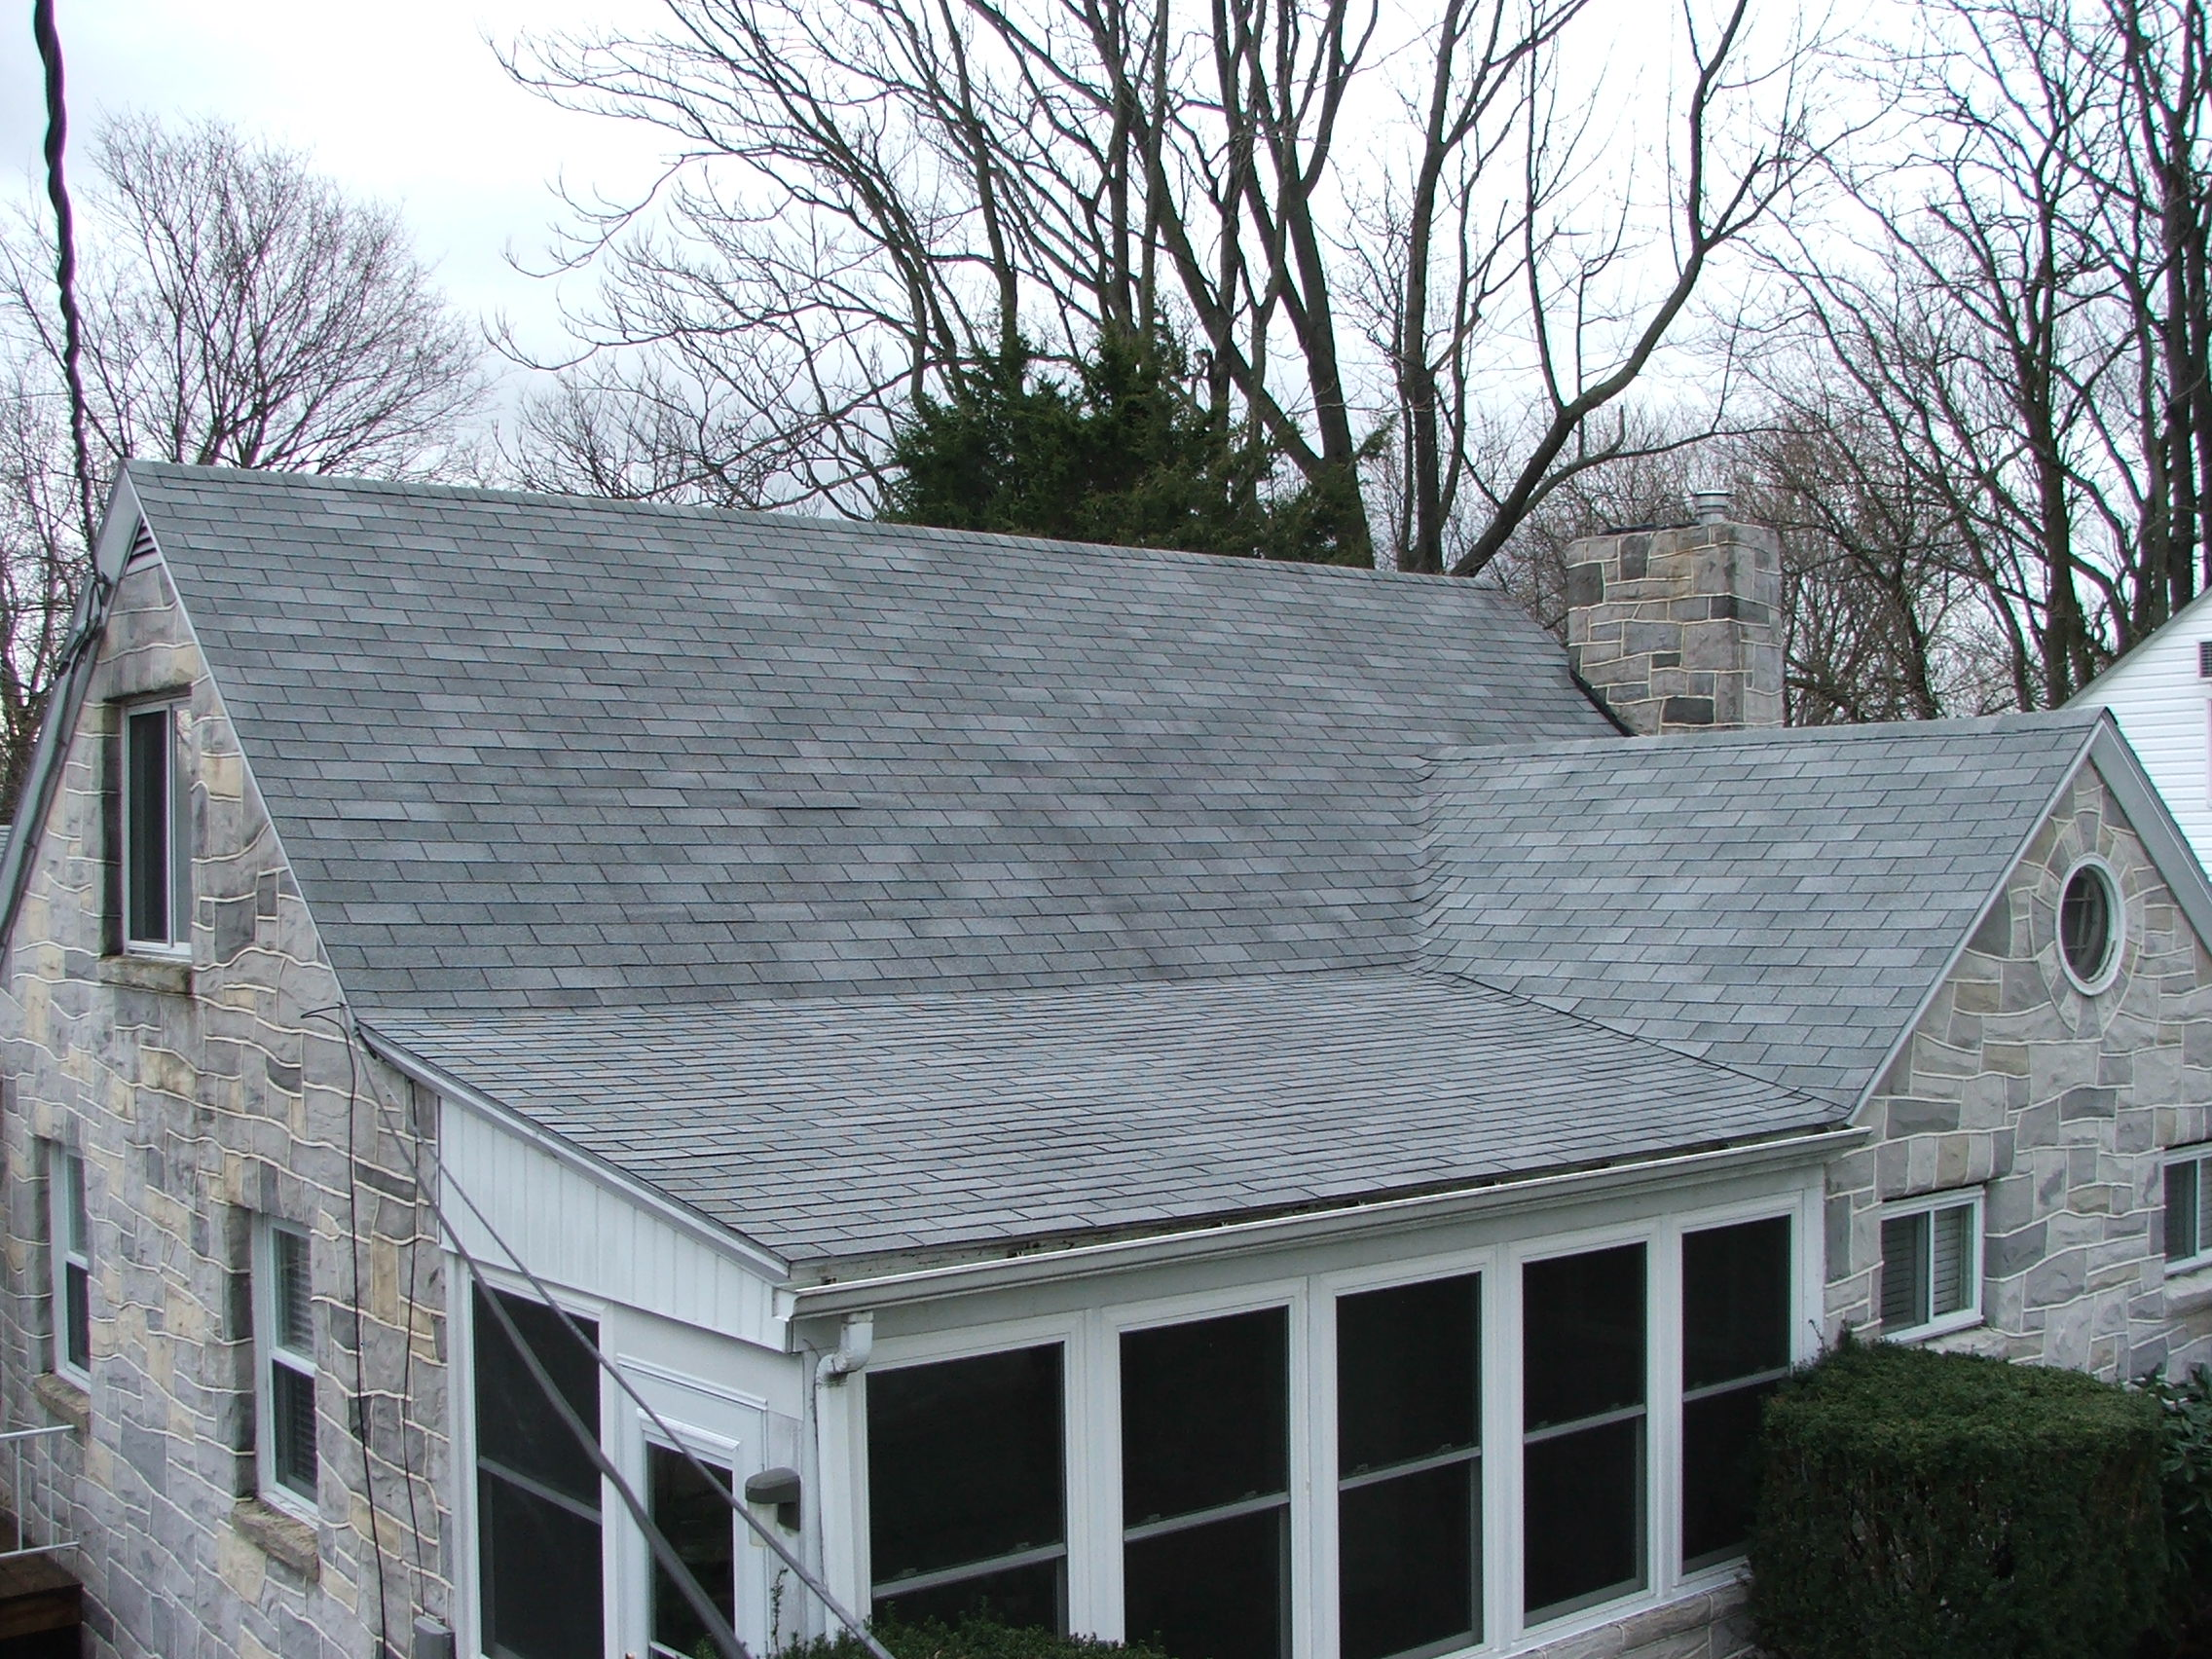 After low pressure washing and cleaning of a house roof in Harrisburg PA